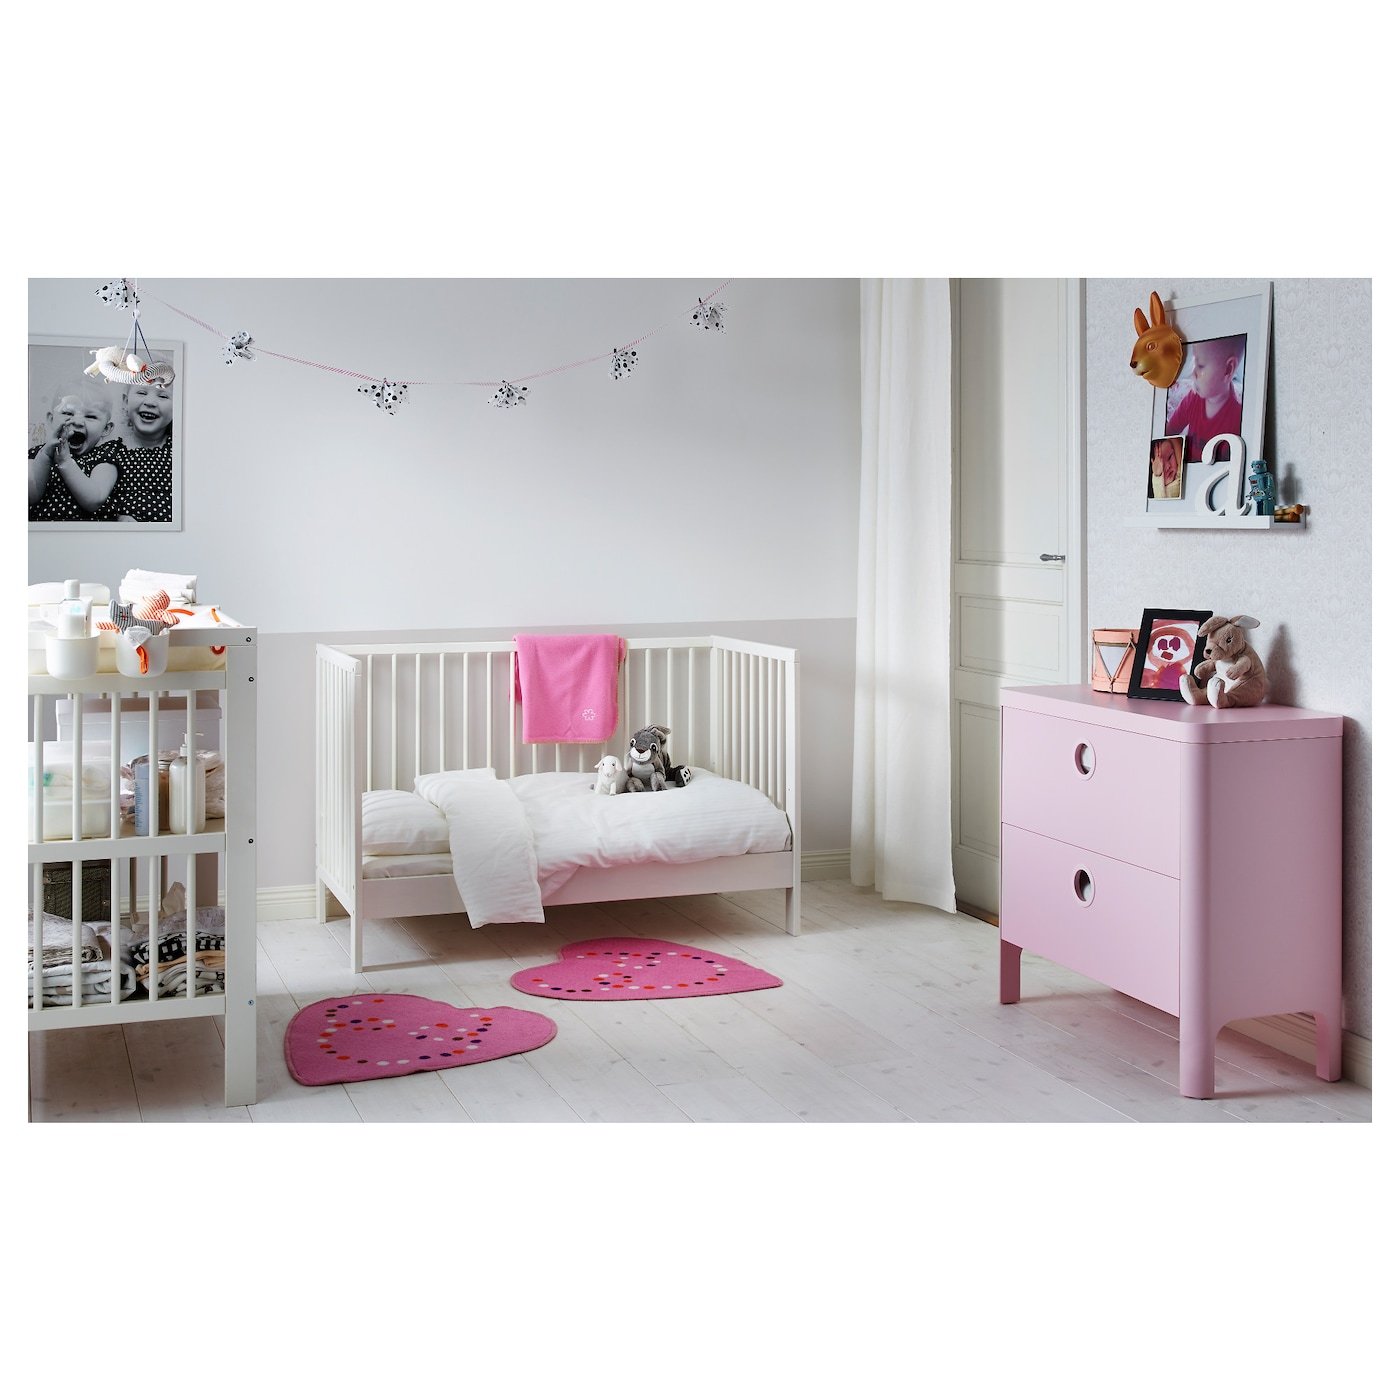 gulliver lit b b blanc 60x120 cm ikea. Black Bedroom Furniture Sets. Home Design Ideas